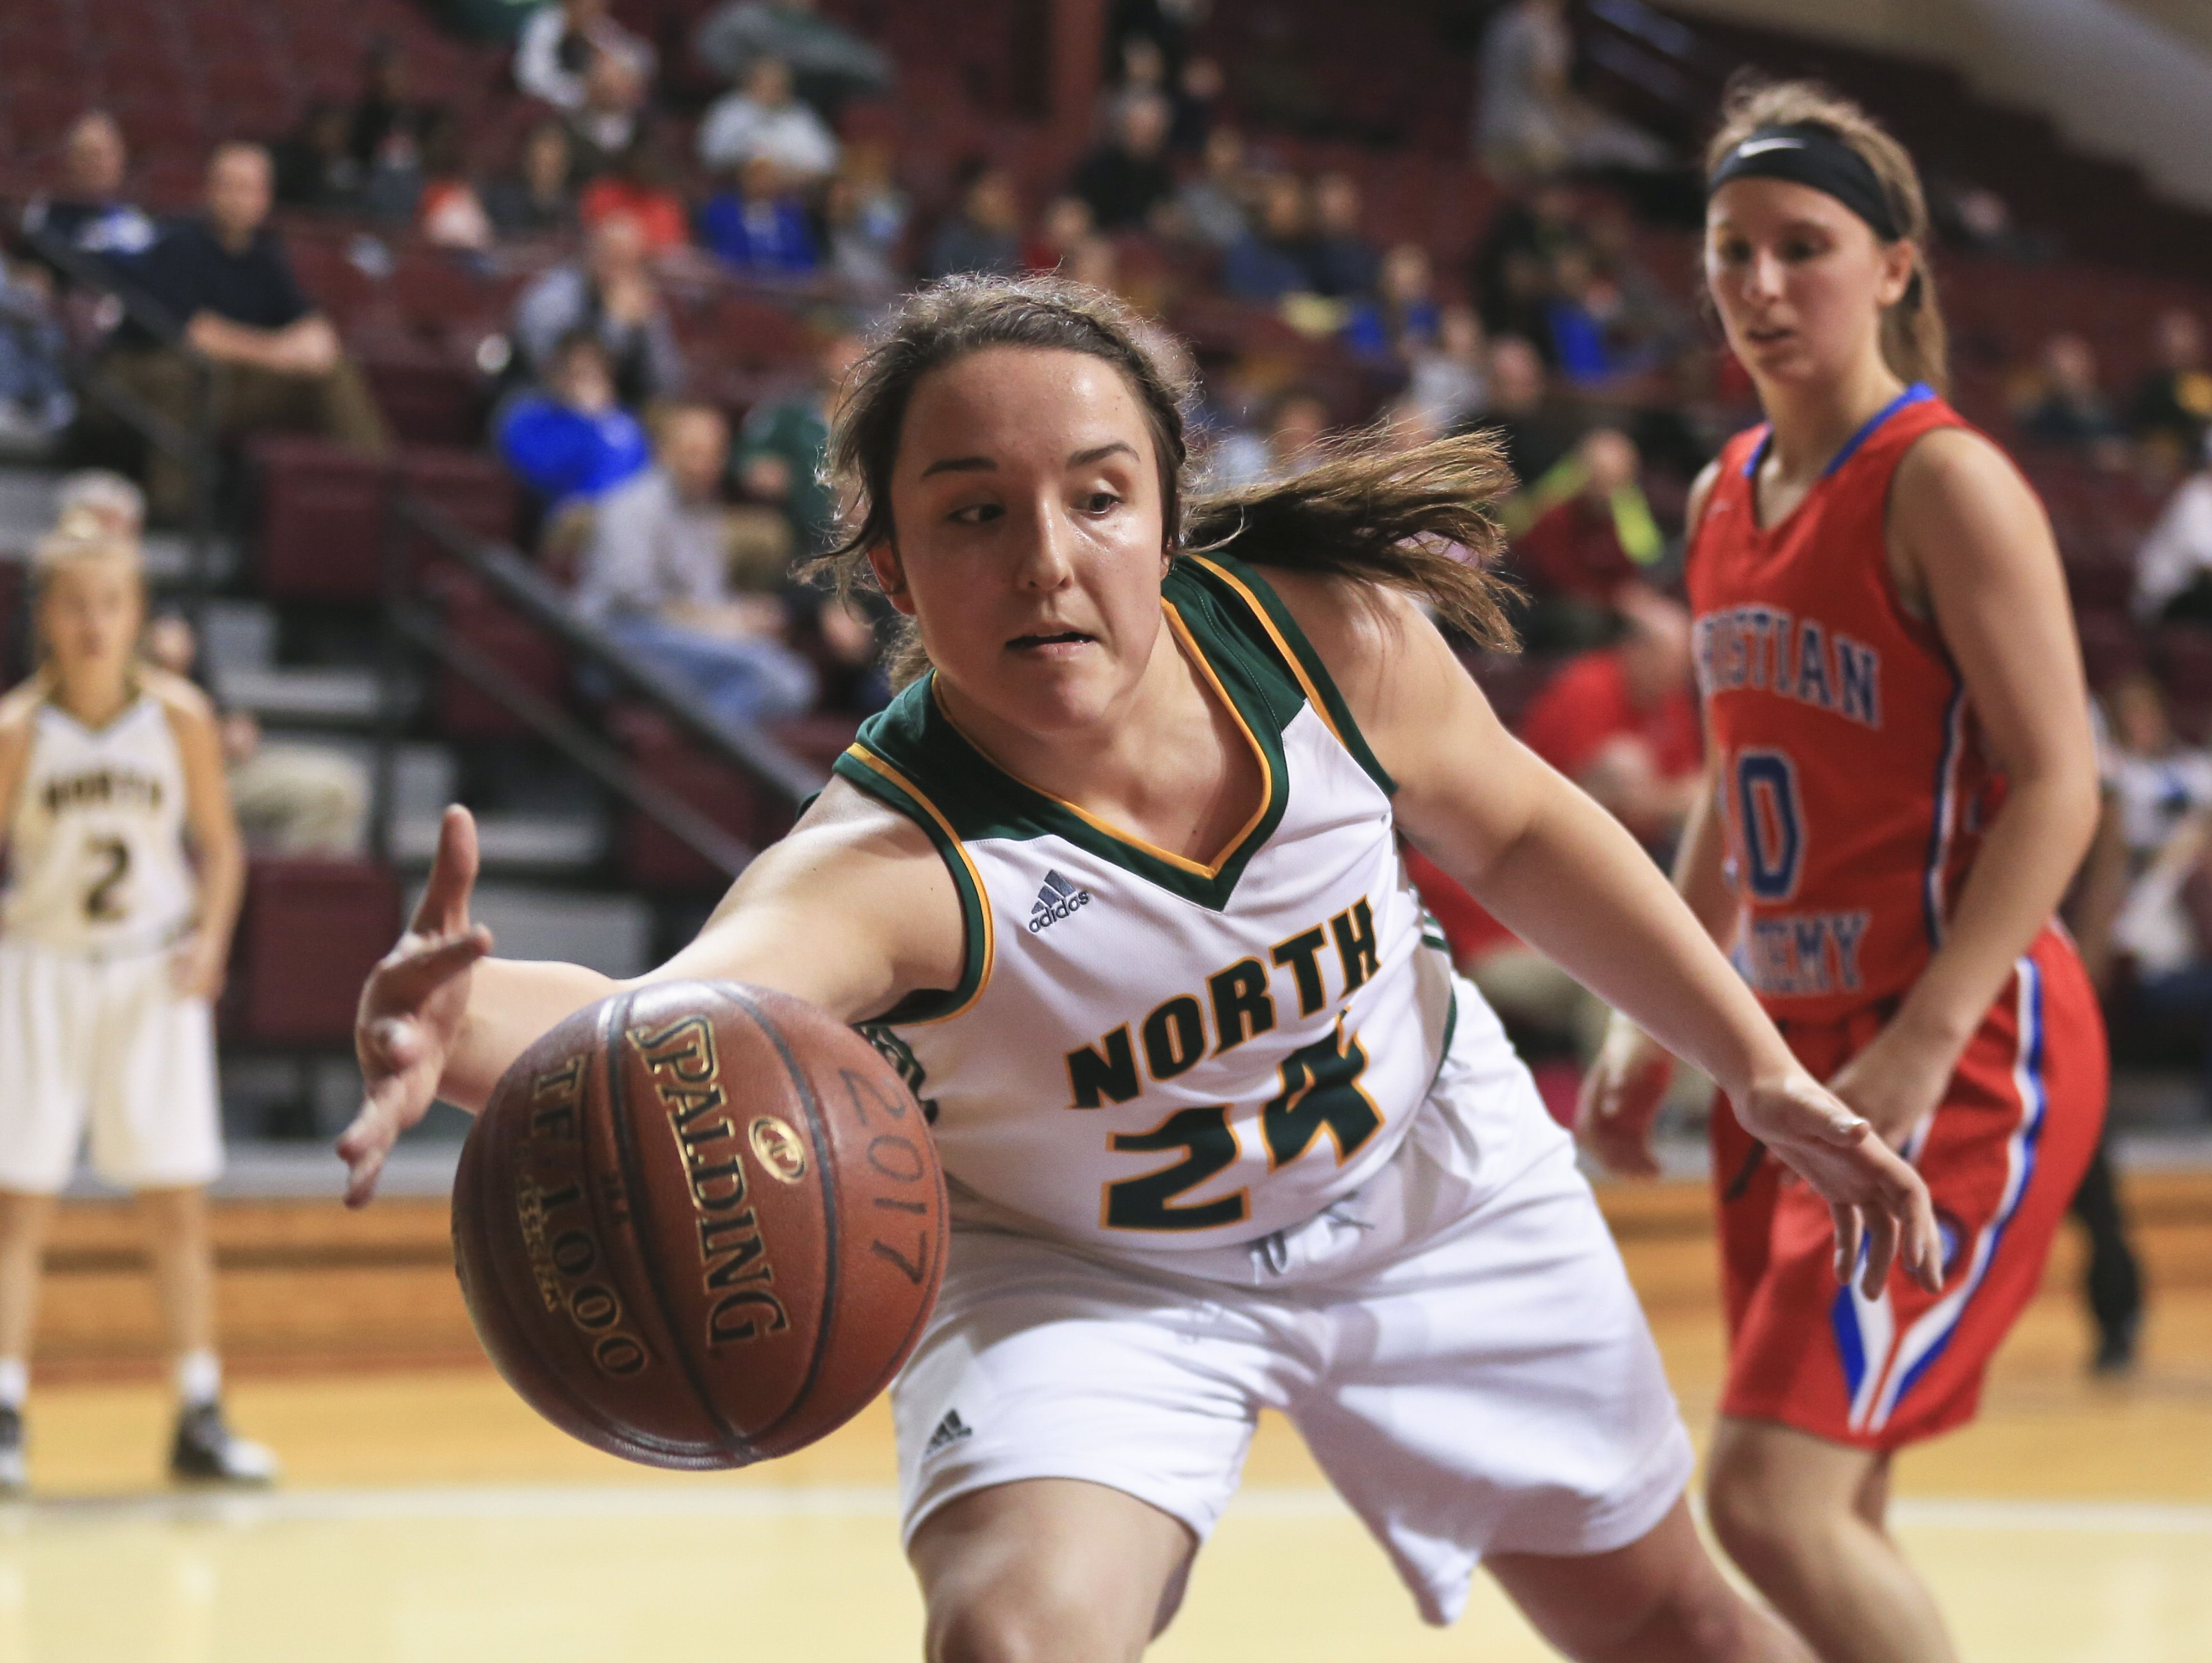 North Bullitt's Sarah Janes tries to save the ball from out-of-bounds during the first game of the Girls' LIT at Bellarmine University Tuesday afternoon.